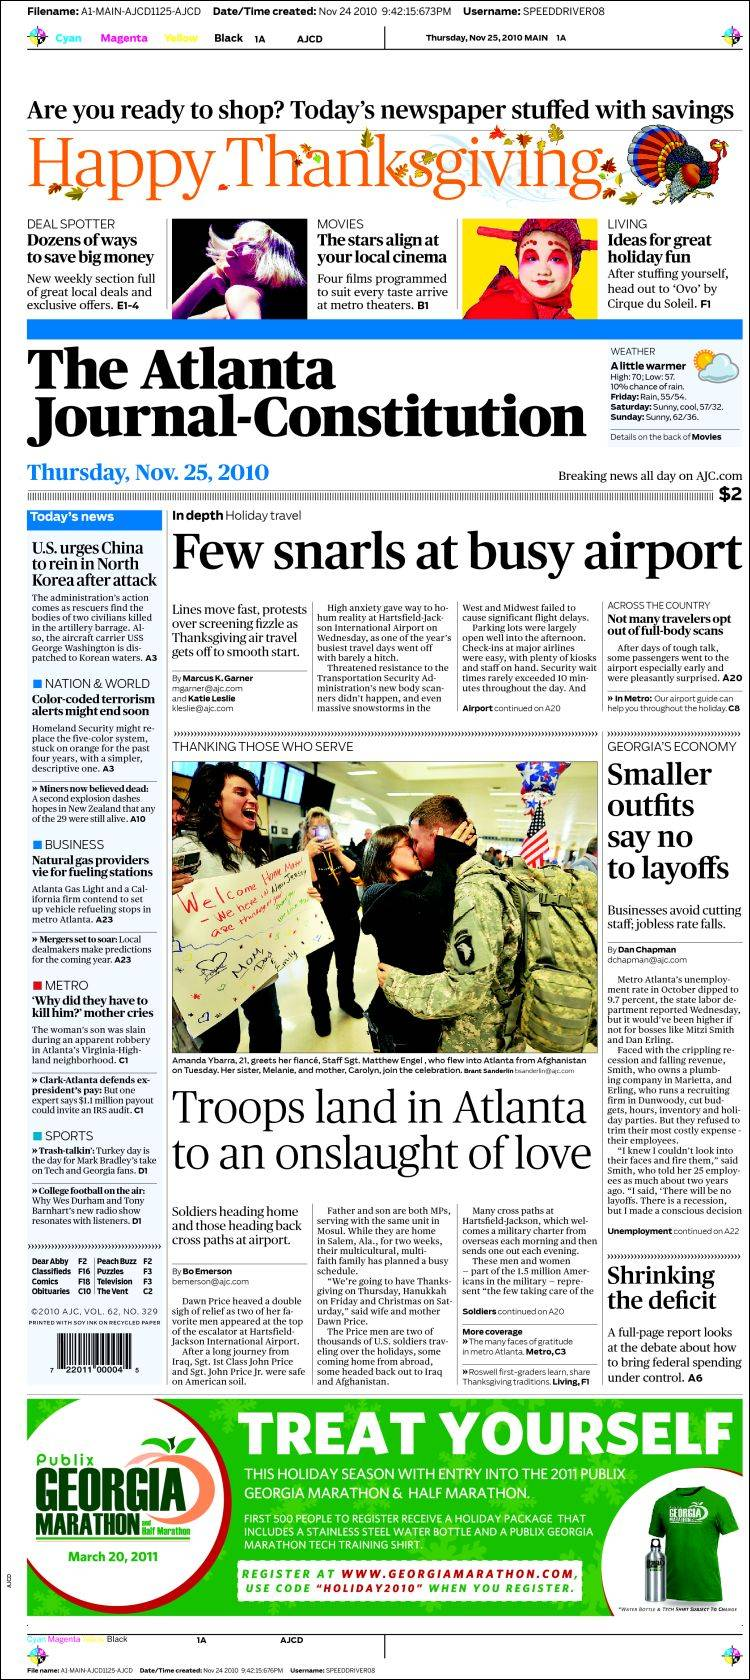 an analysis of the atlantic journal in the atlantic constitution The atlanta journal-constitution - 2018-03-27 us, allies unite, expel russians over spy case nursing board asks legislators for power.